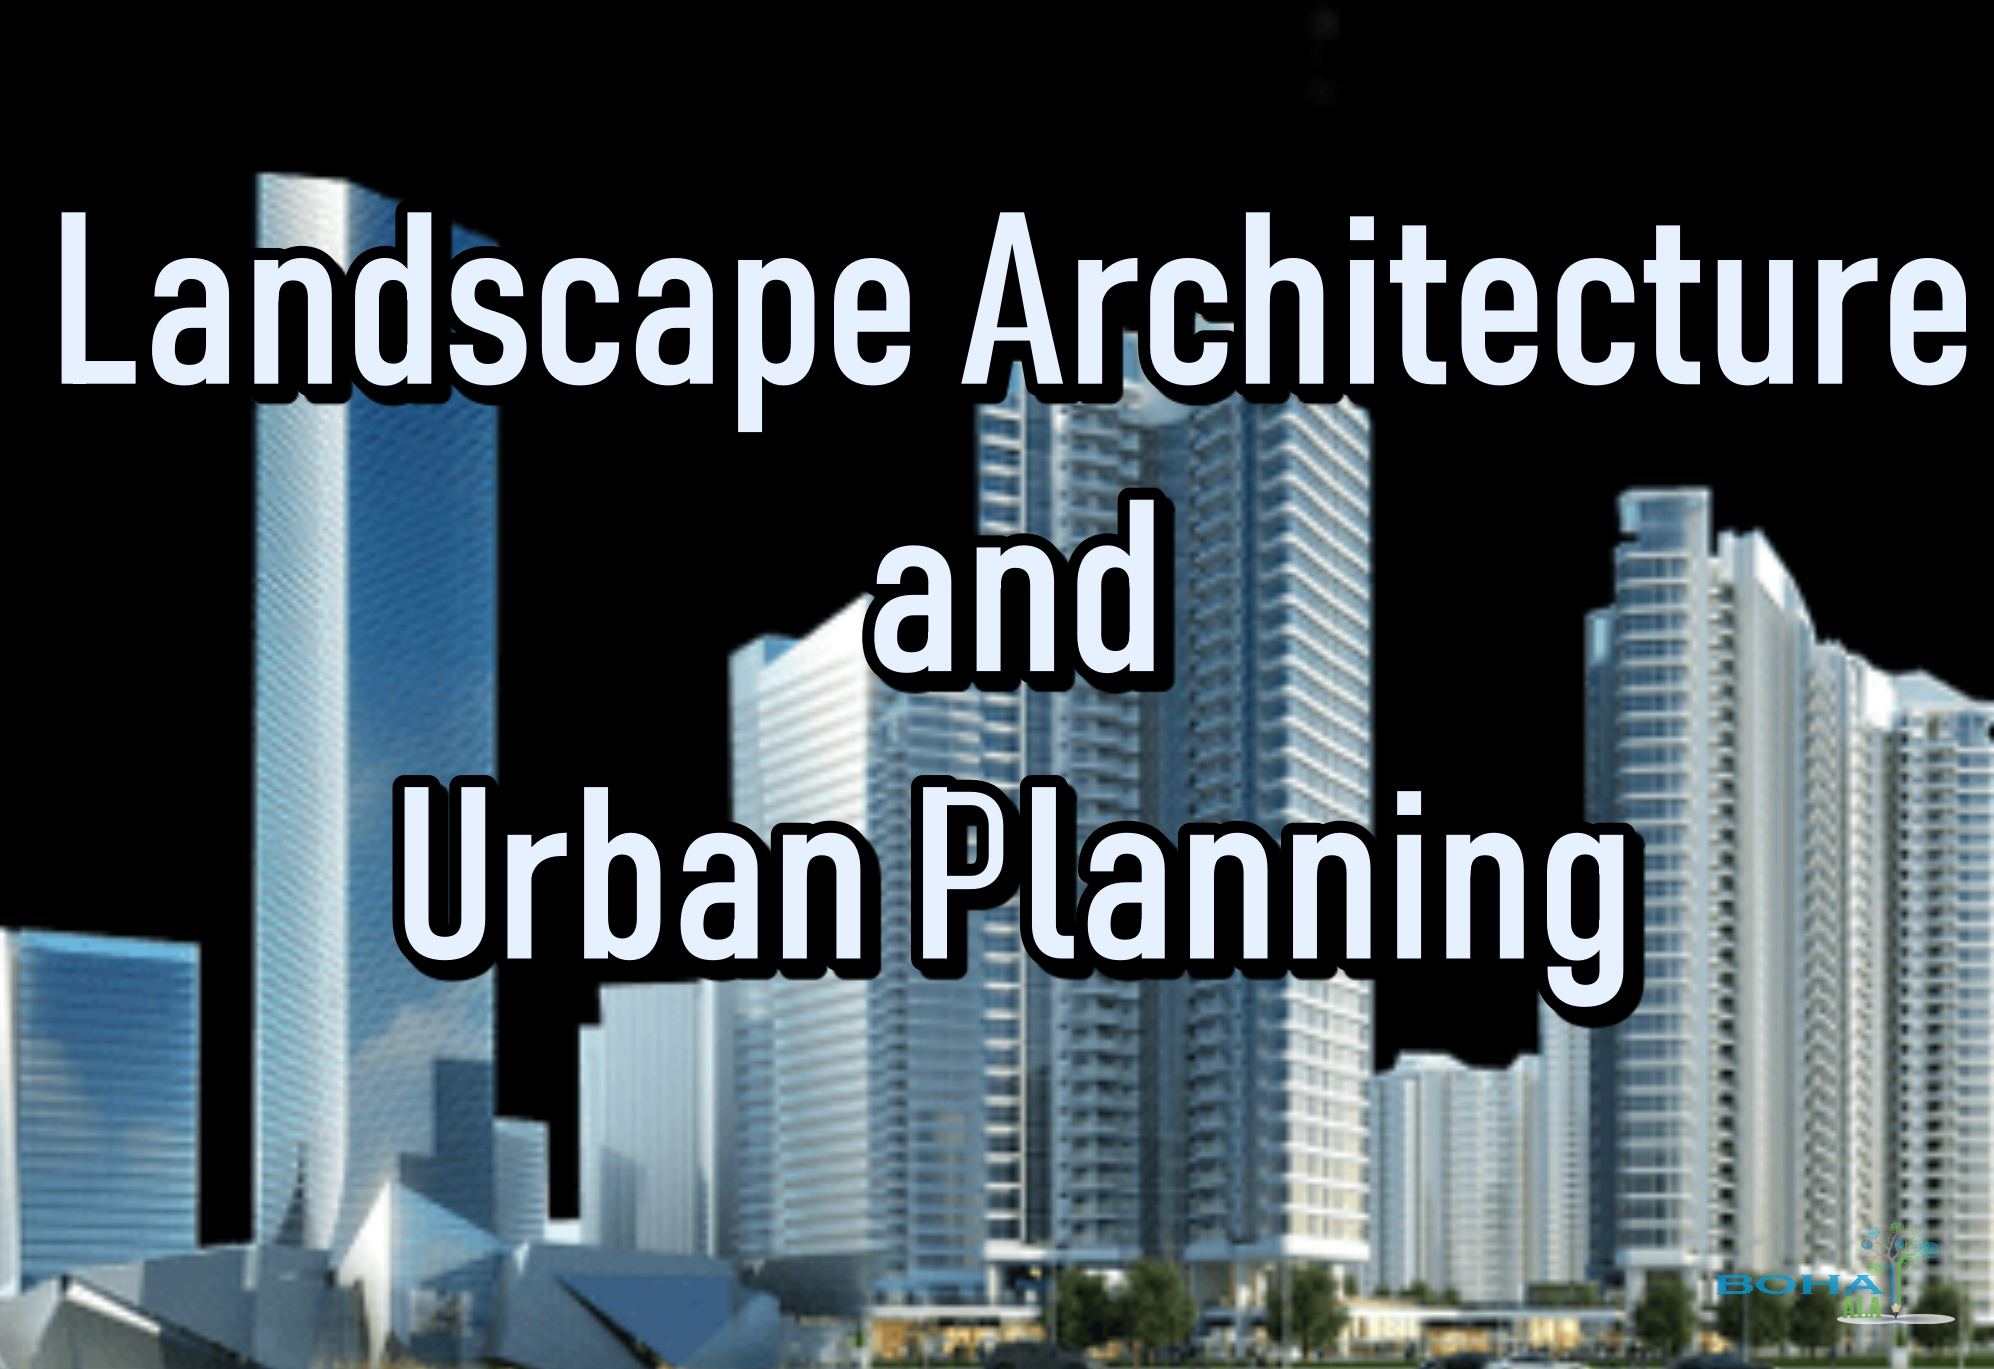 Landscape Architecture and Urban Planning